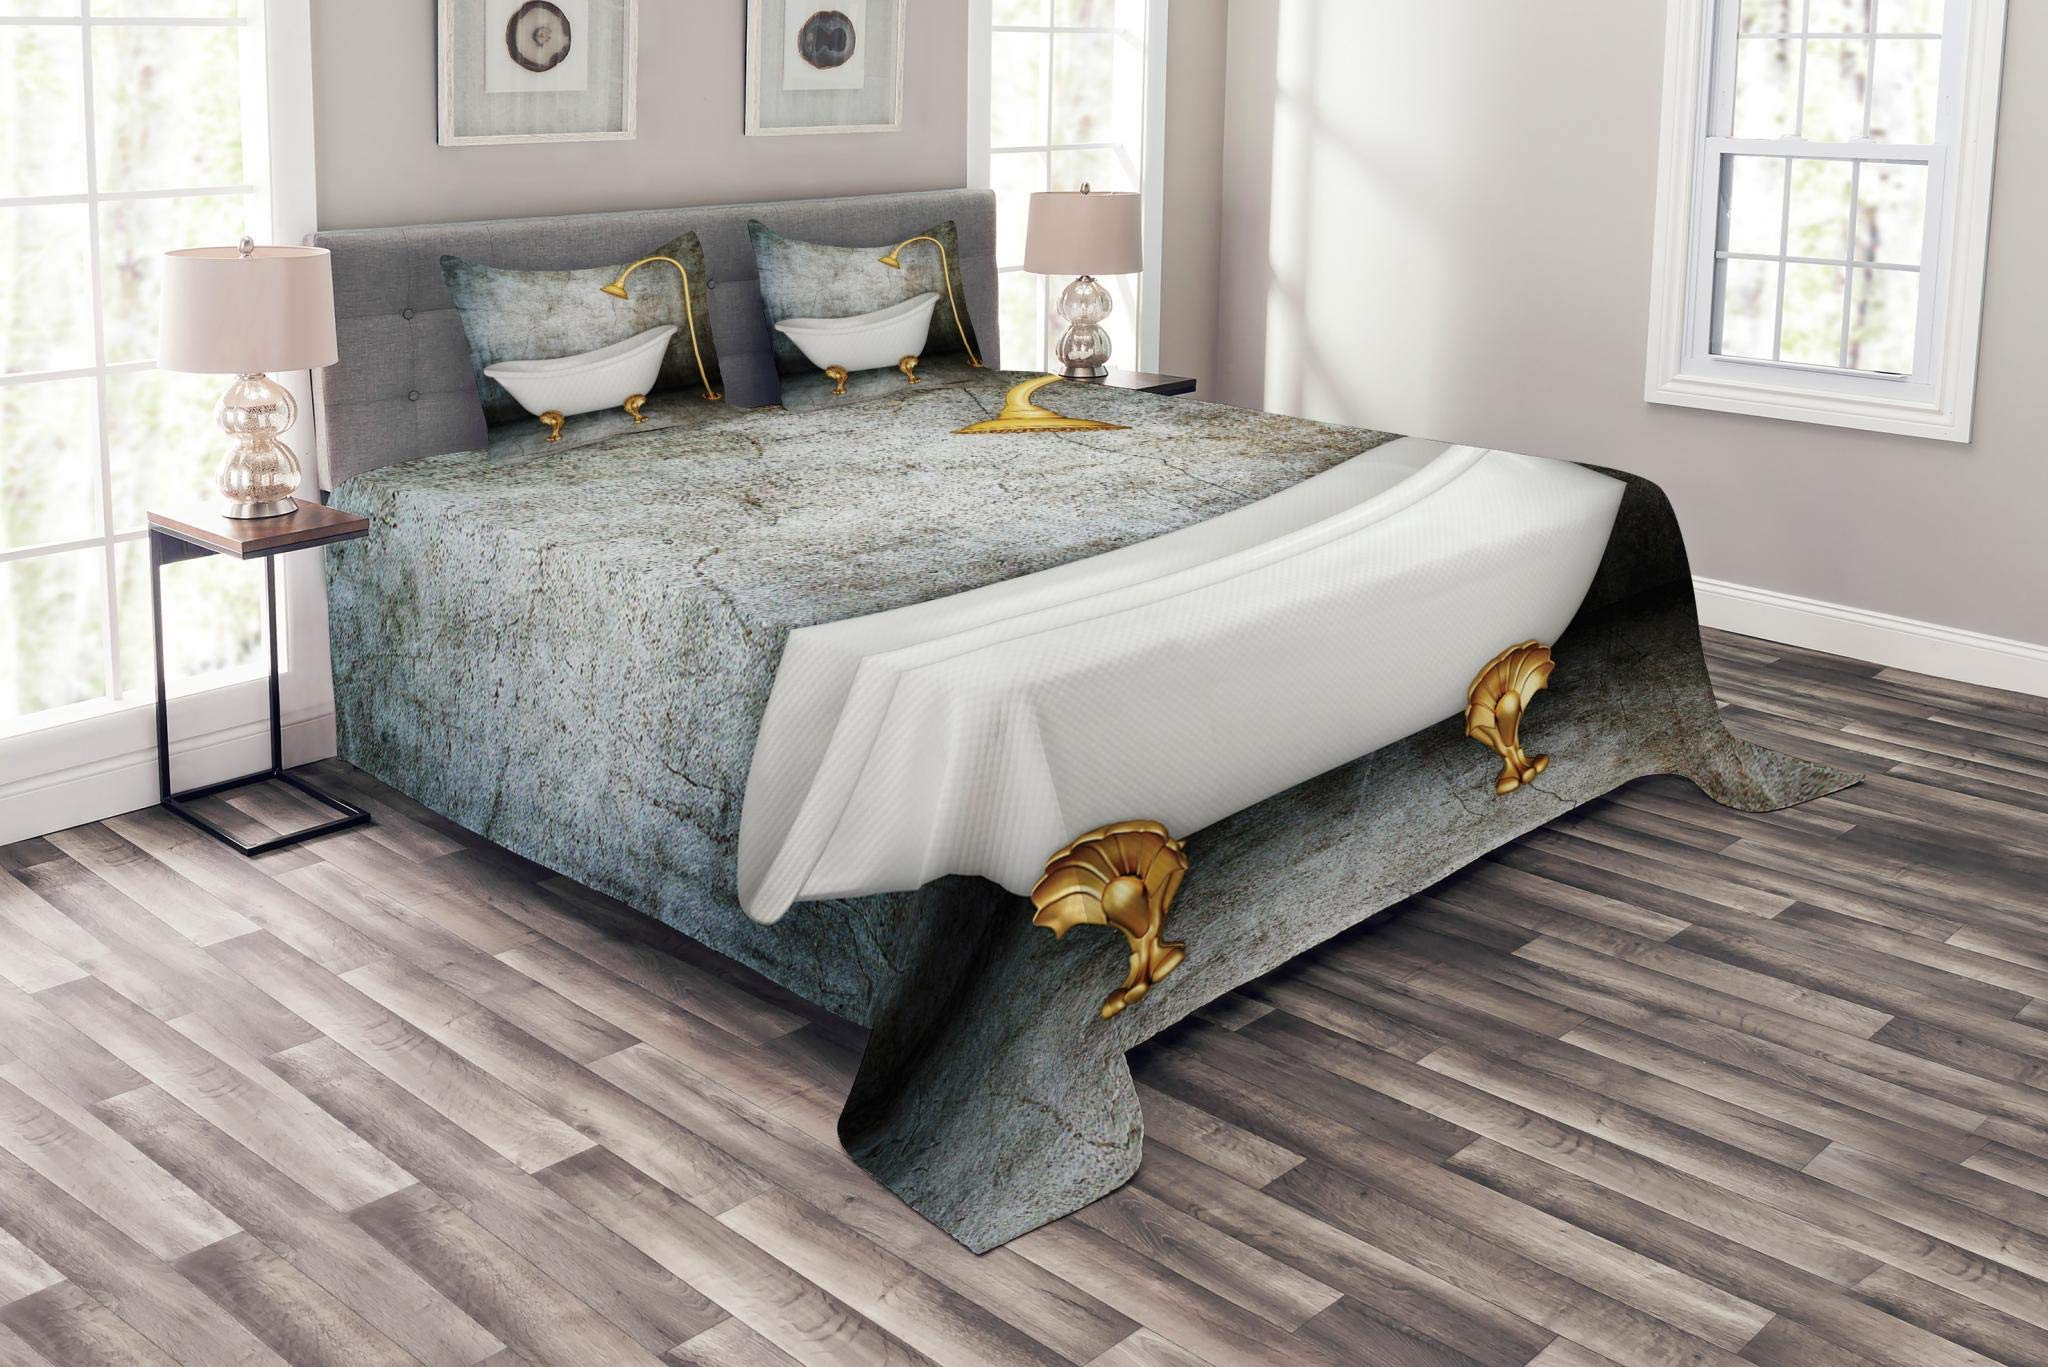 Lunarable Retro Bedspread Set King Size, Vintage Bathtub in Room with Grunge Wall Lifestyle Resting Spa Theme Art Print, Decorative Quilted 3 Piece Coverlet Set with 2 Pillow Shams, Grey White Gold